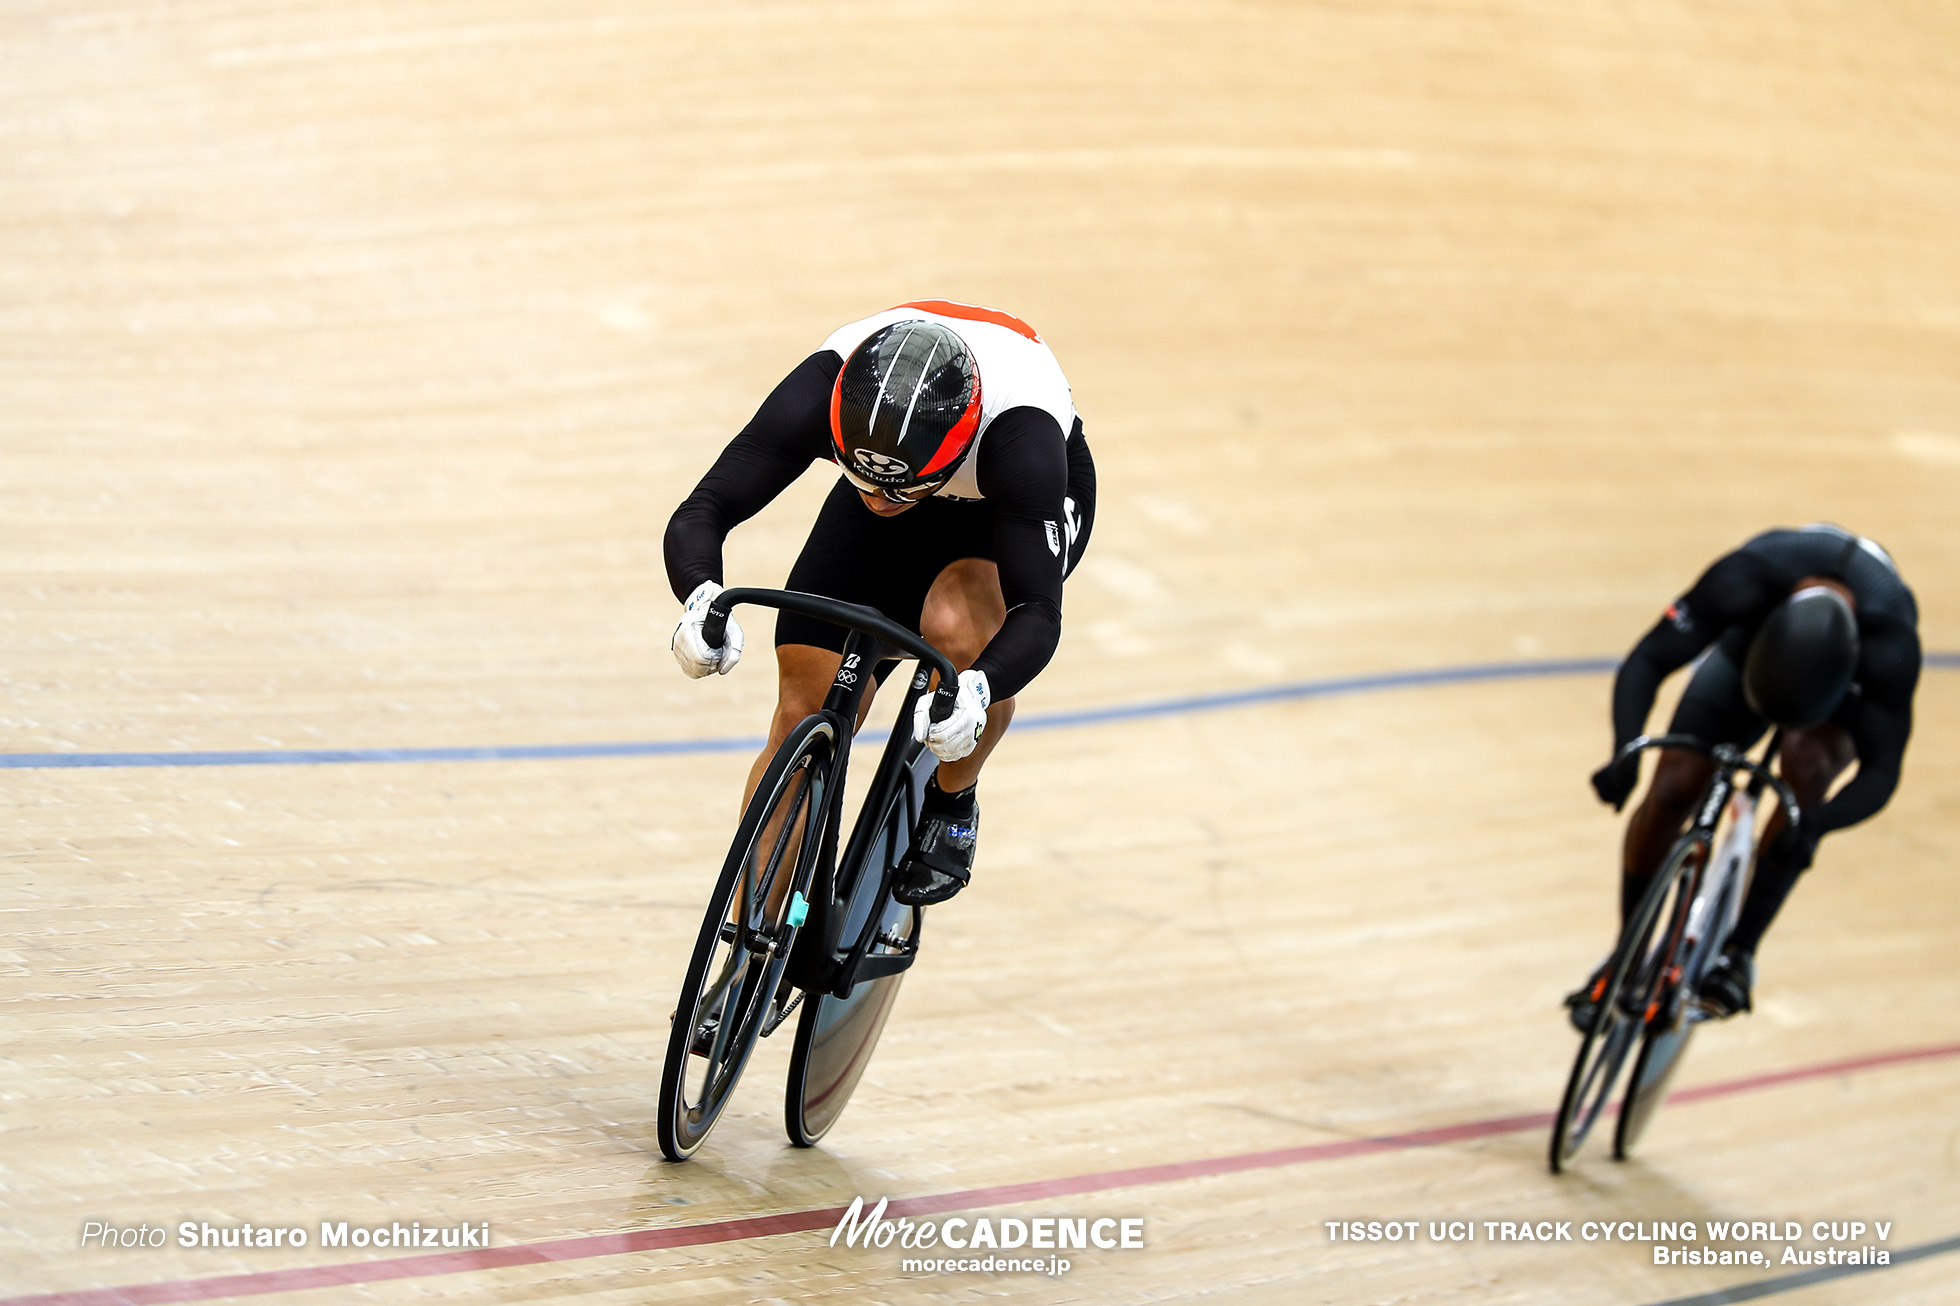 1st Round / Men's Keirin / TISSOT UCI TRACK CYCLING WORLD CUP V, Brisbane, Australia